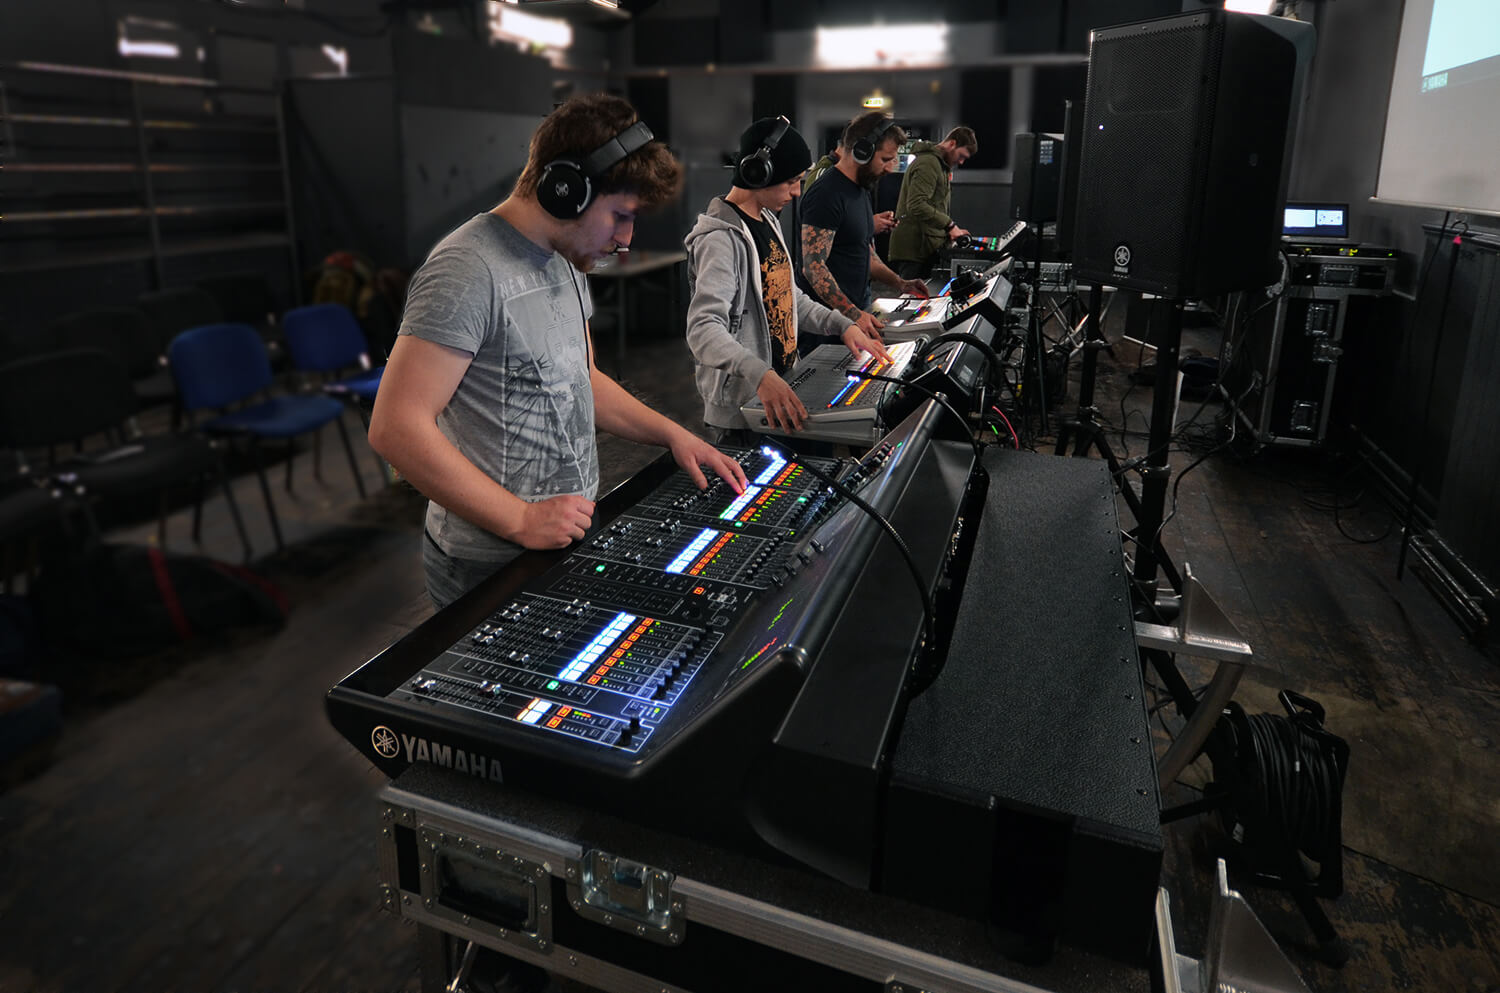 Live Sound and Music Events Diploma Course | dBs Music Bristol